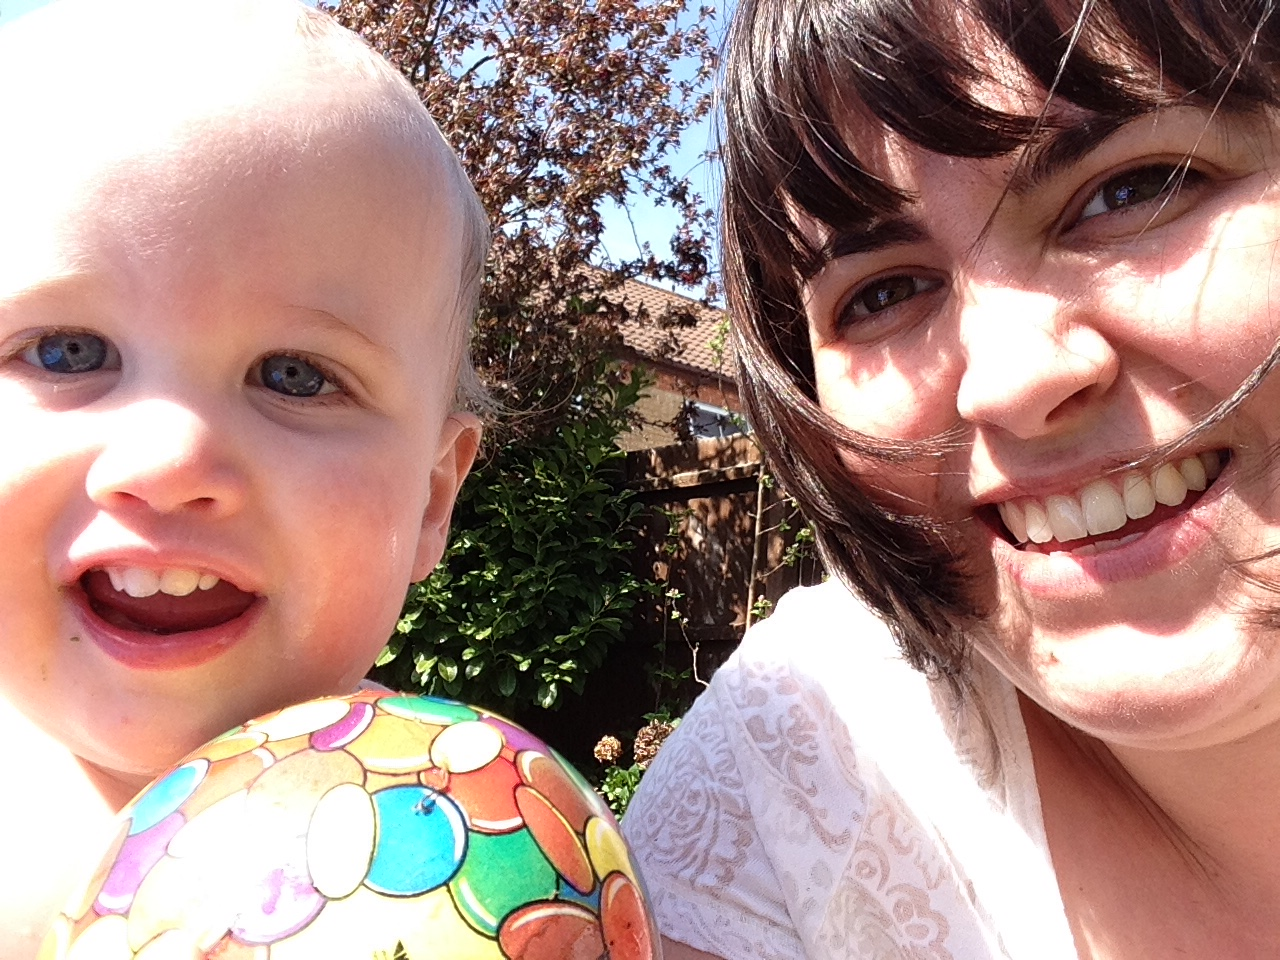 Adam and I covered in grass today by the paddling pool.